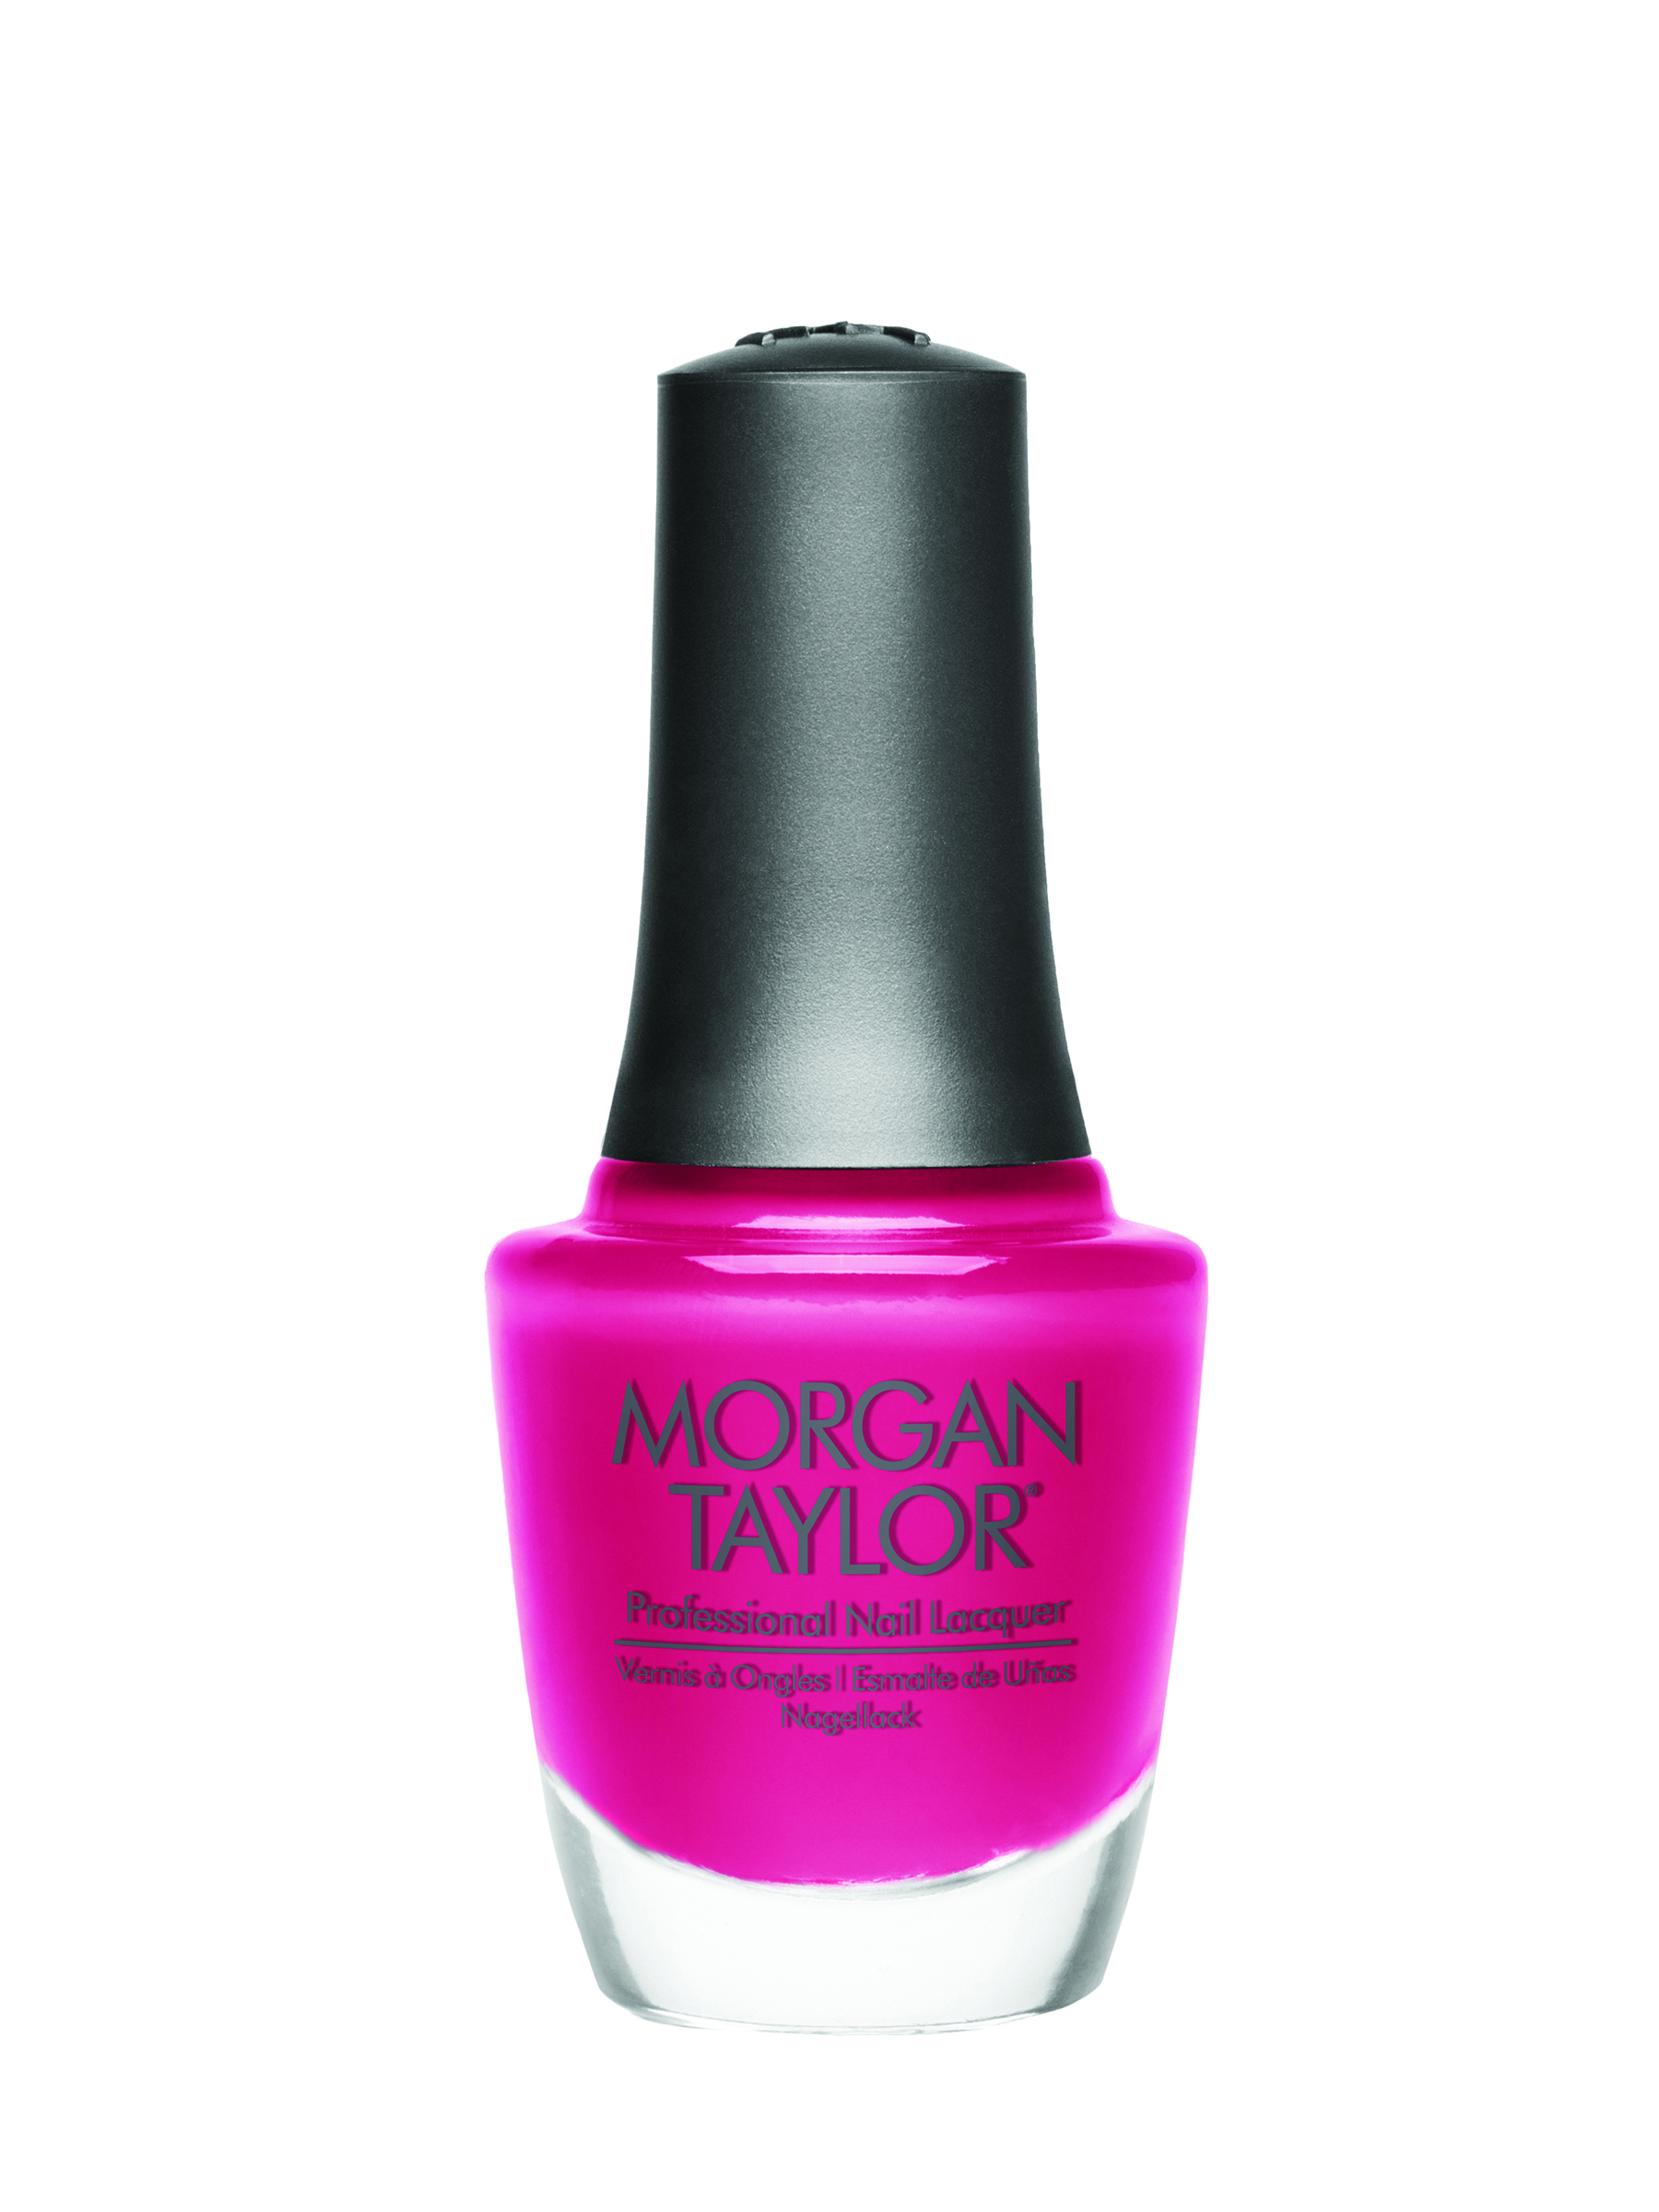 Morgan Taylor Don't Pansy Around: Color brights like coral and fuchsia are perfect for creating the eye-catching geometric designs and graphic patterns that were all over the runways.